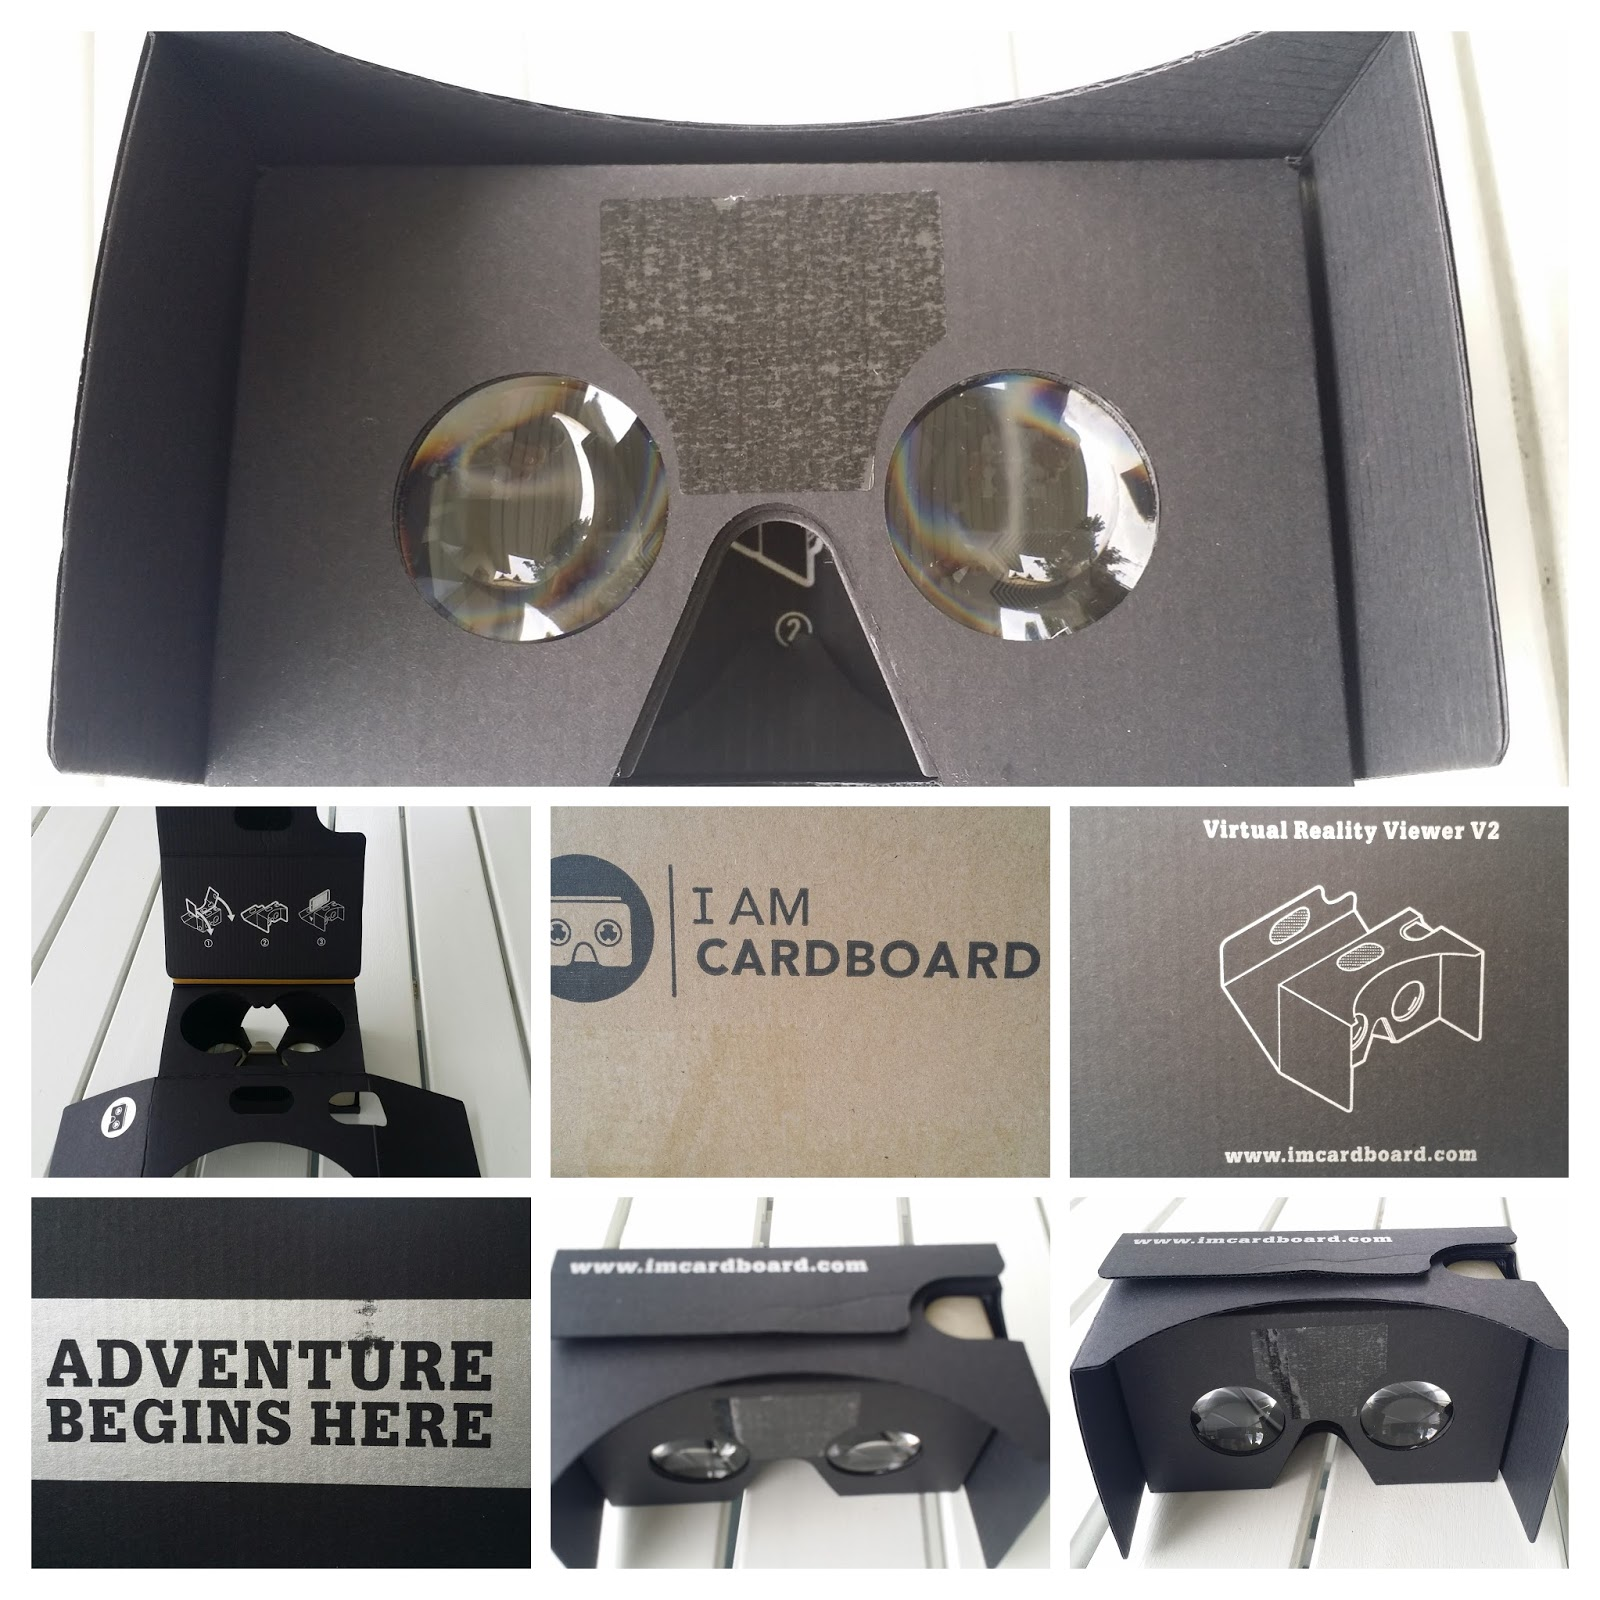 Education Technology - theory and practice: Google Cardboard